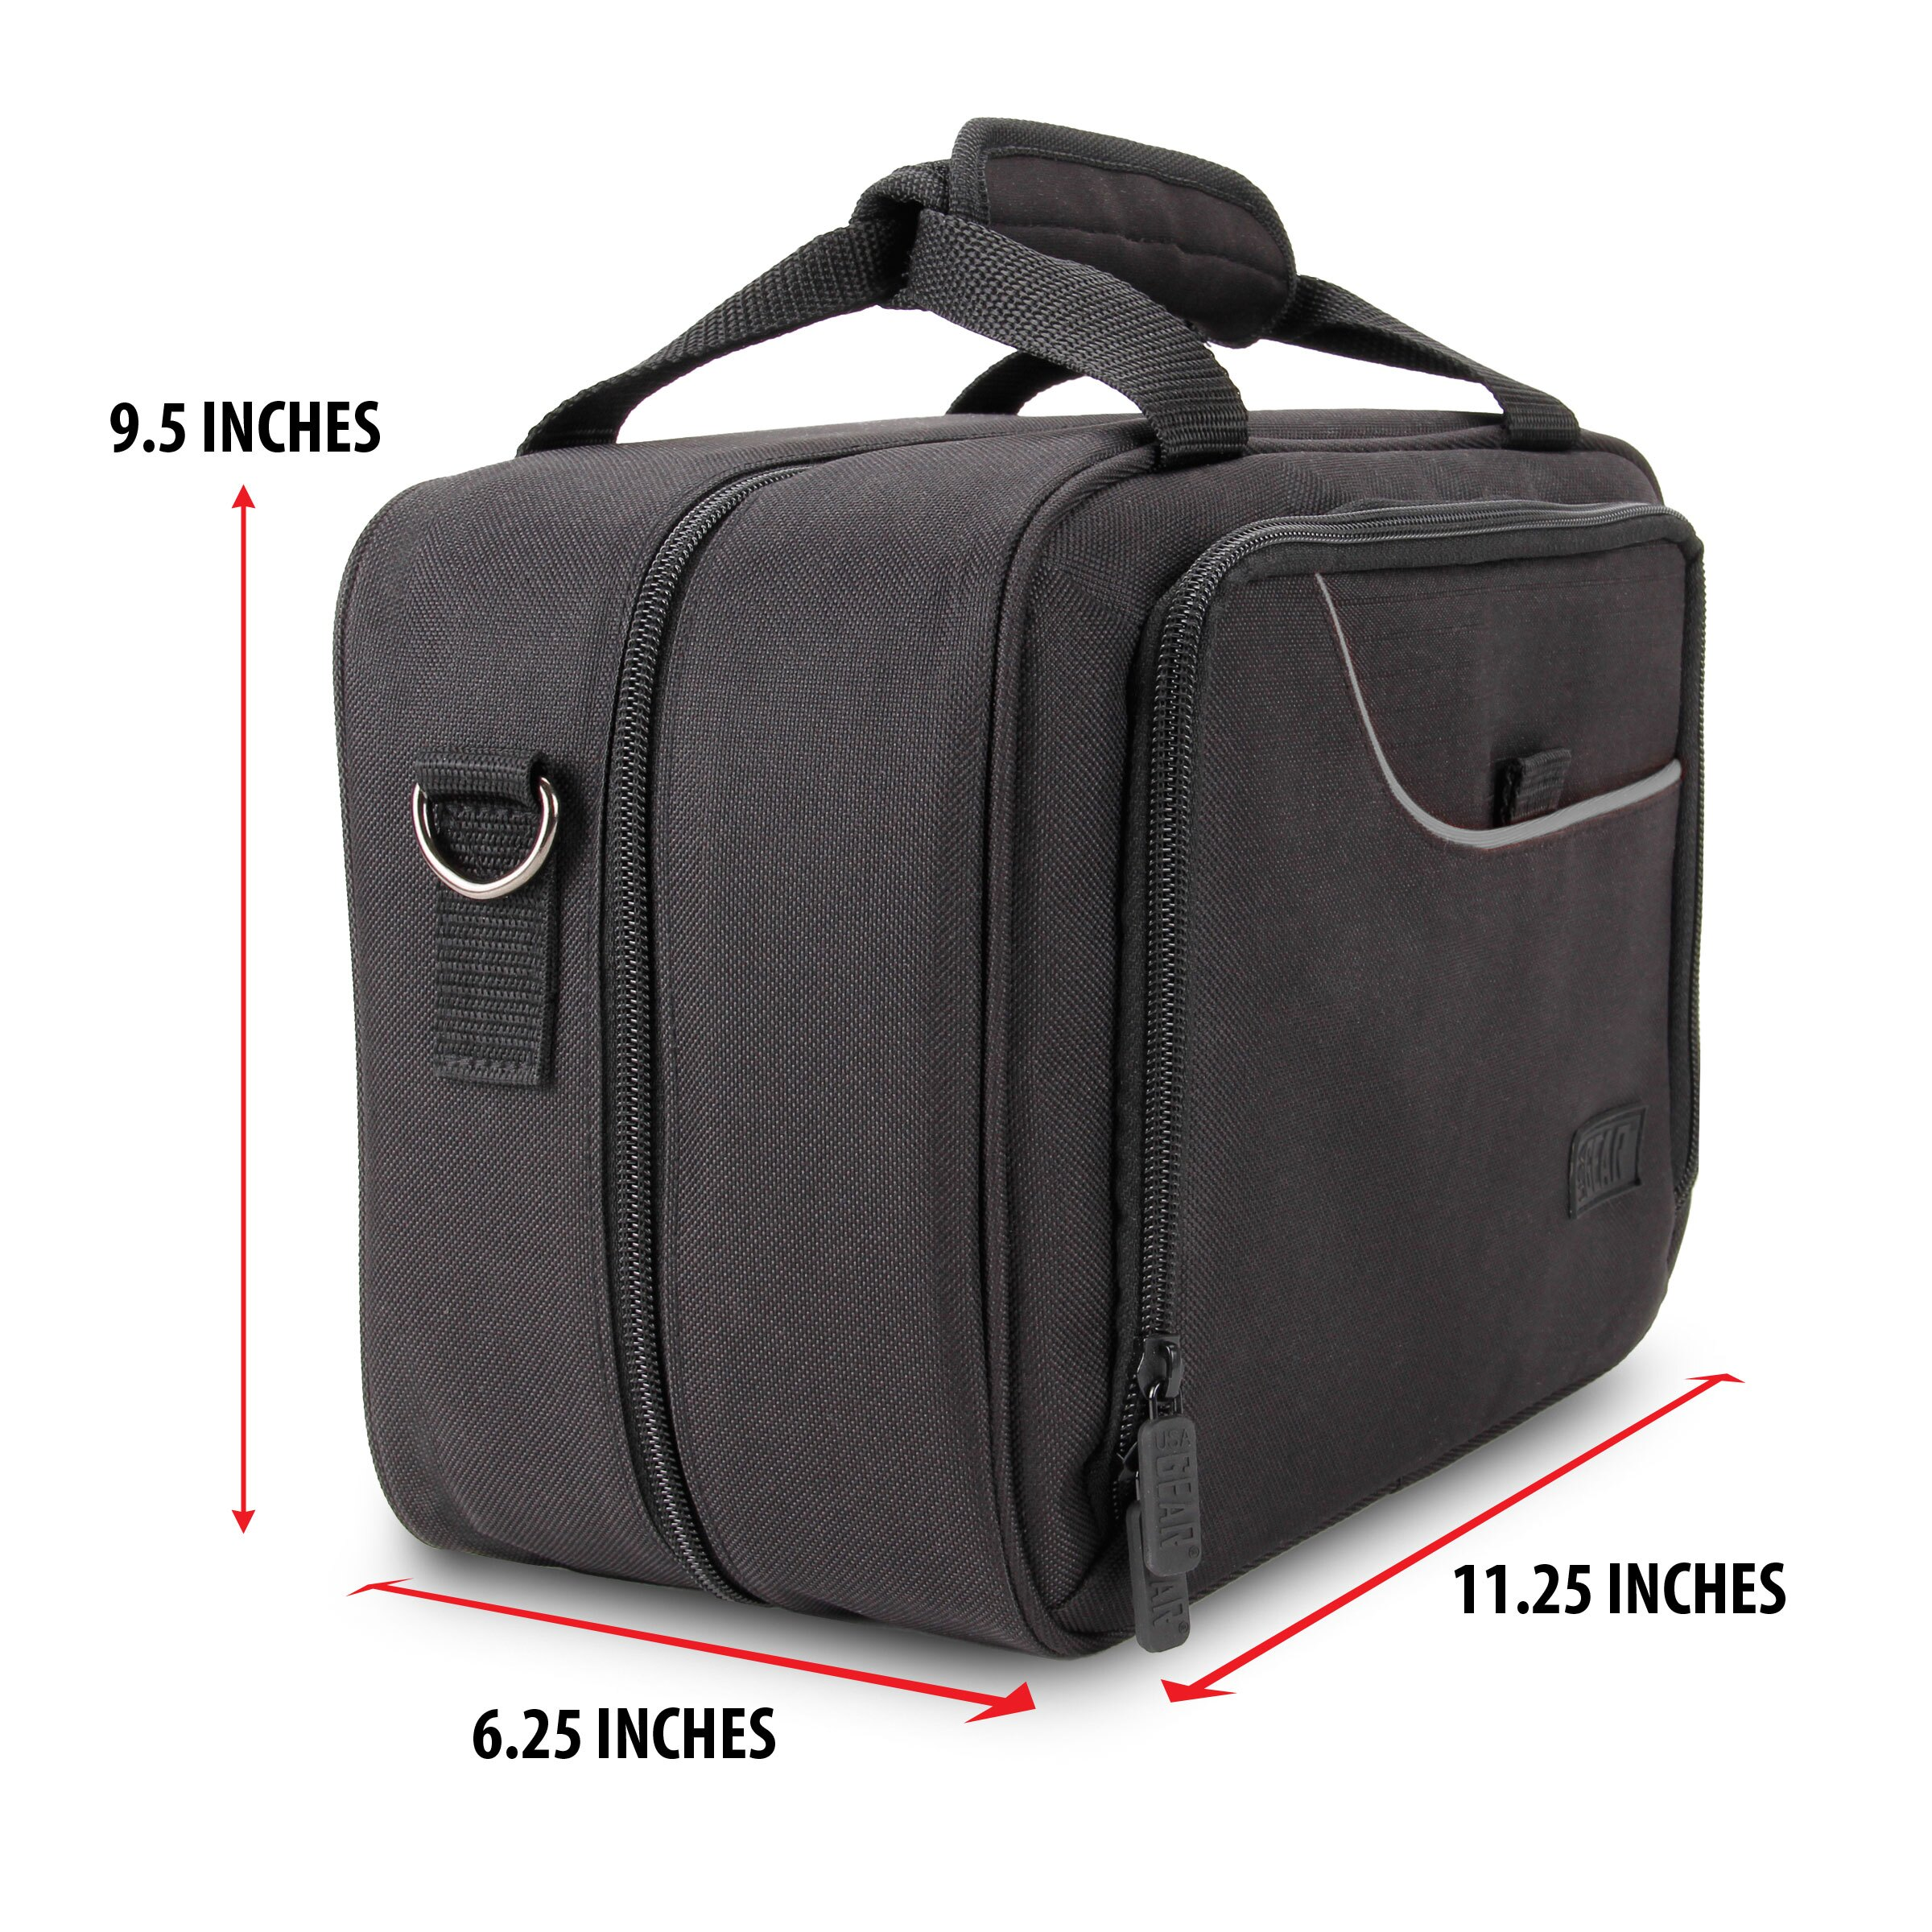 USA Gear Carrying Case Bag for DJI Spark Mini with Shoulder Strap and Accessory Pockets 6